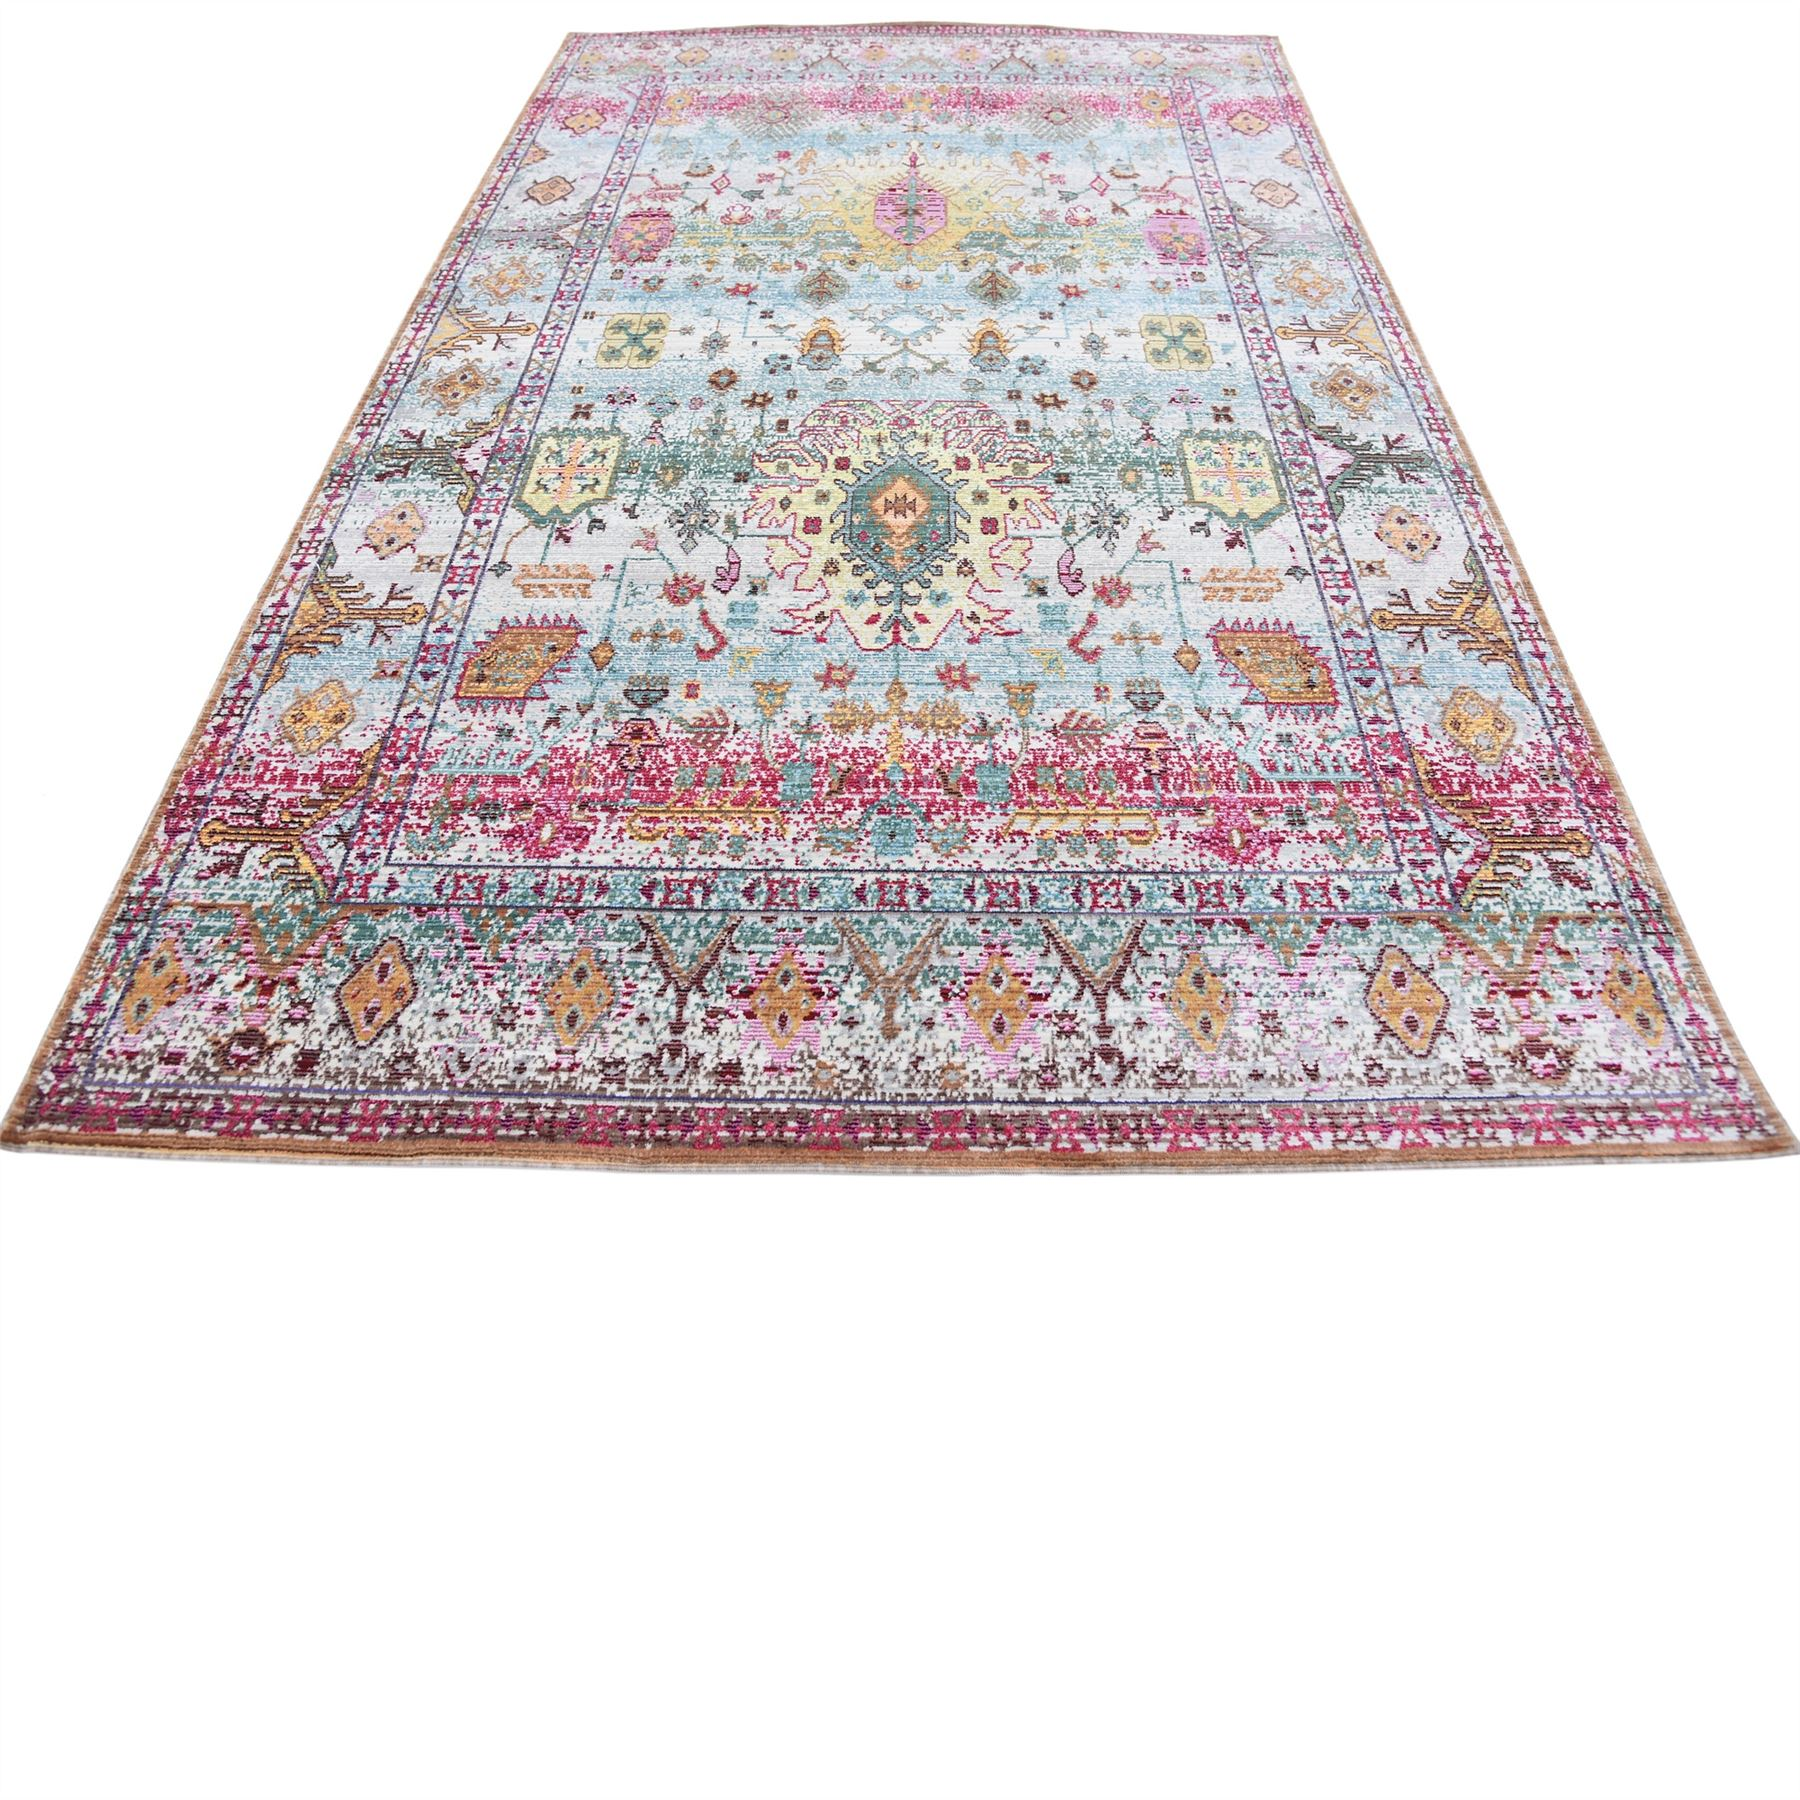 Oriental Rugs: Persian Style Rug Traditional Rug Oriental Area Rug Light